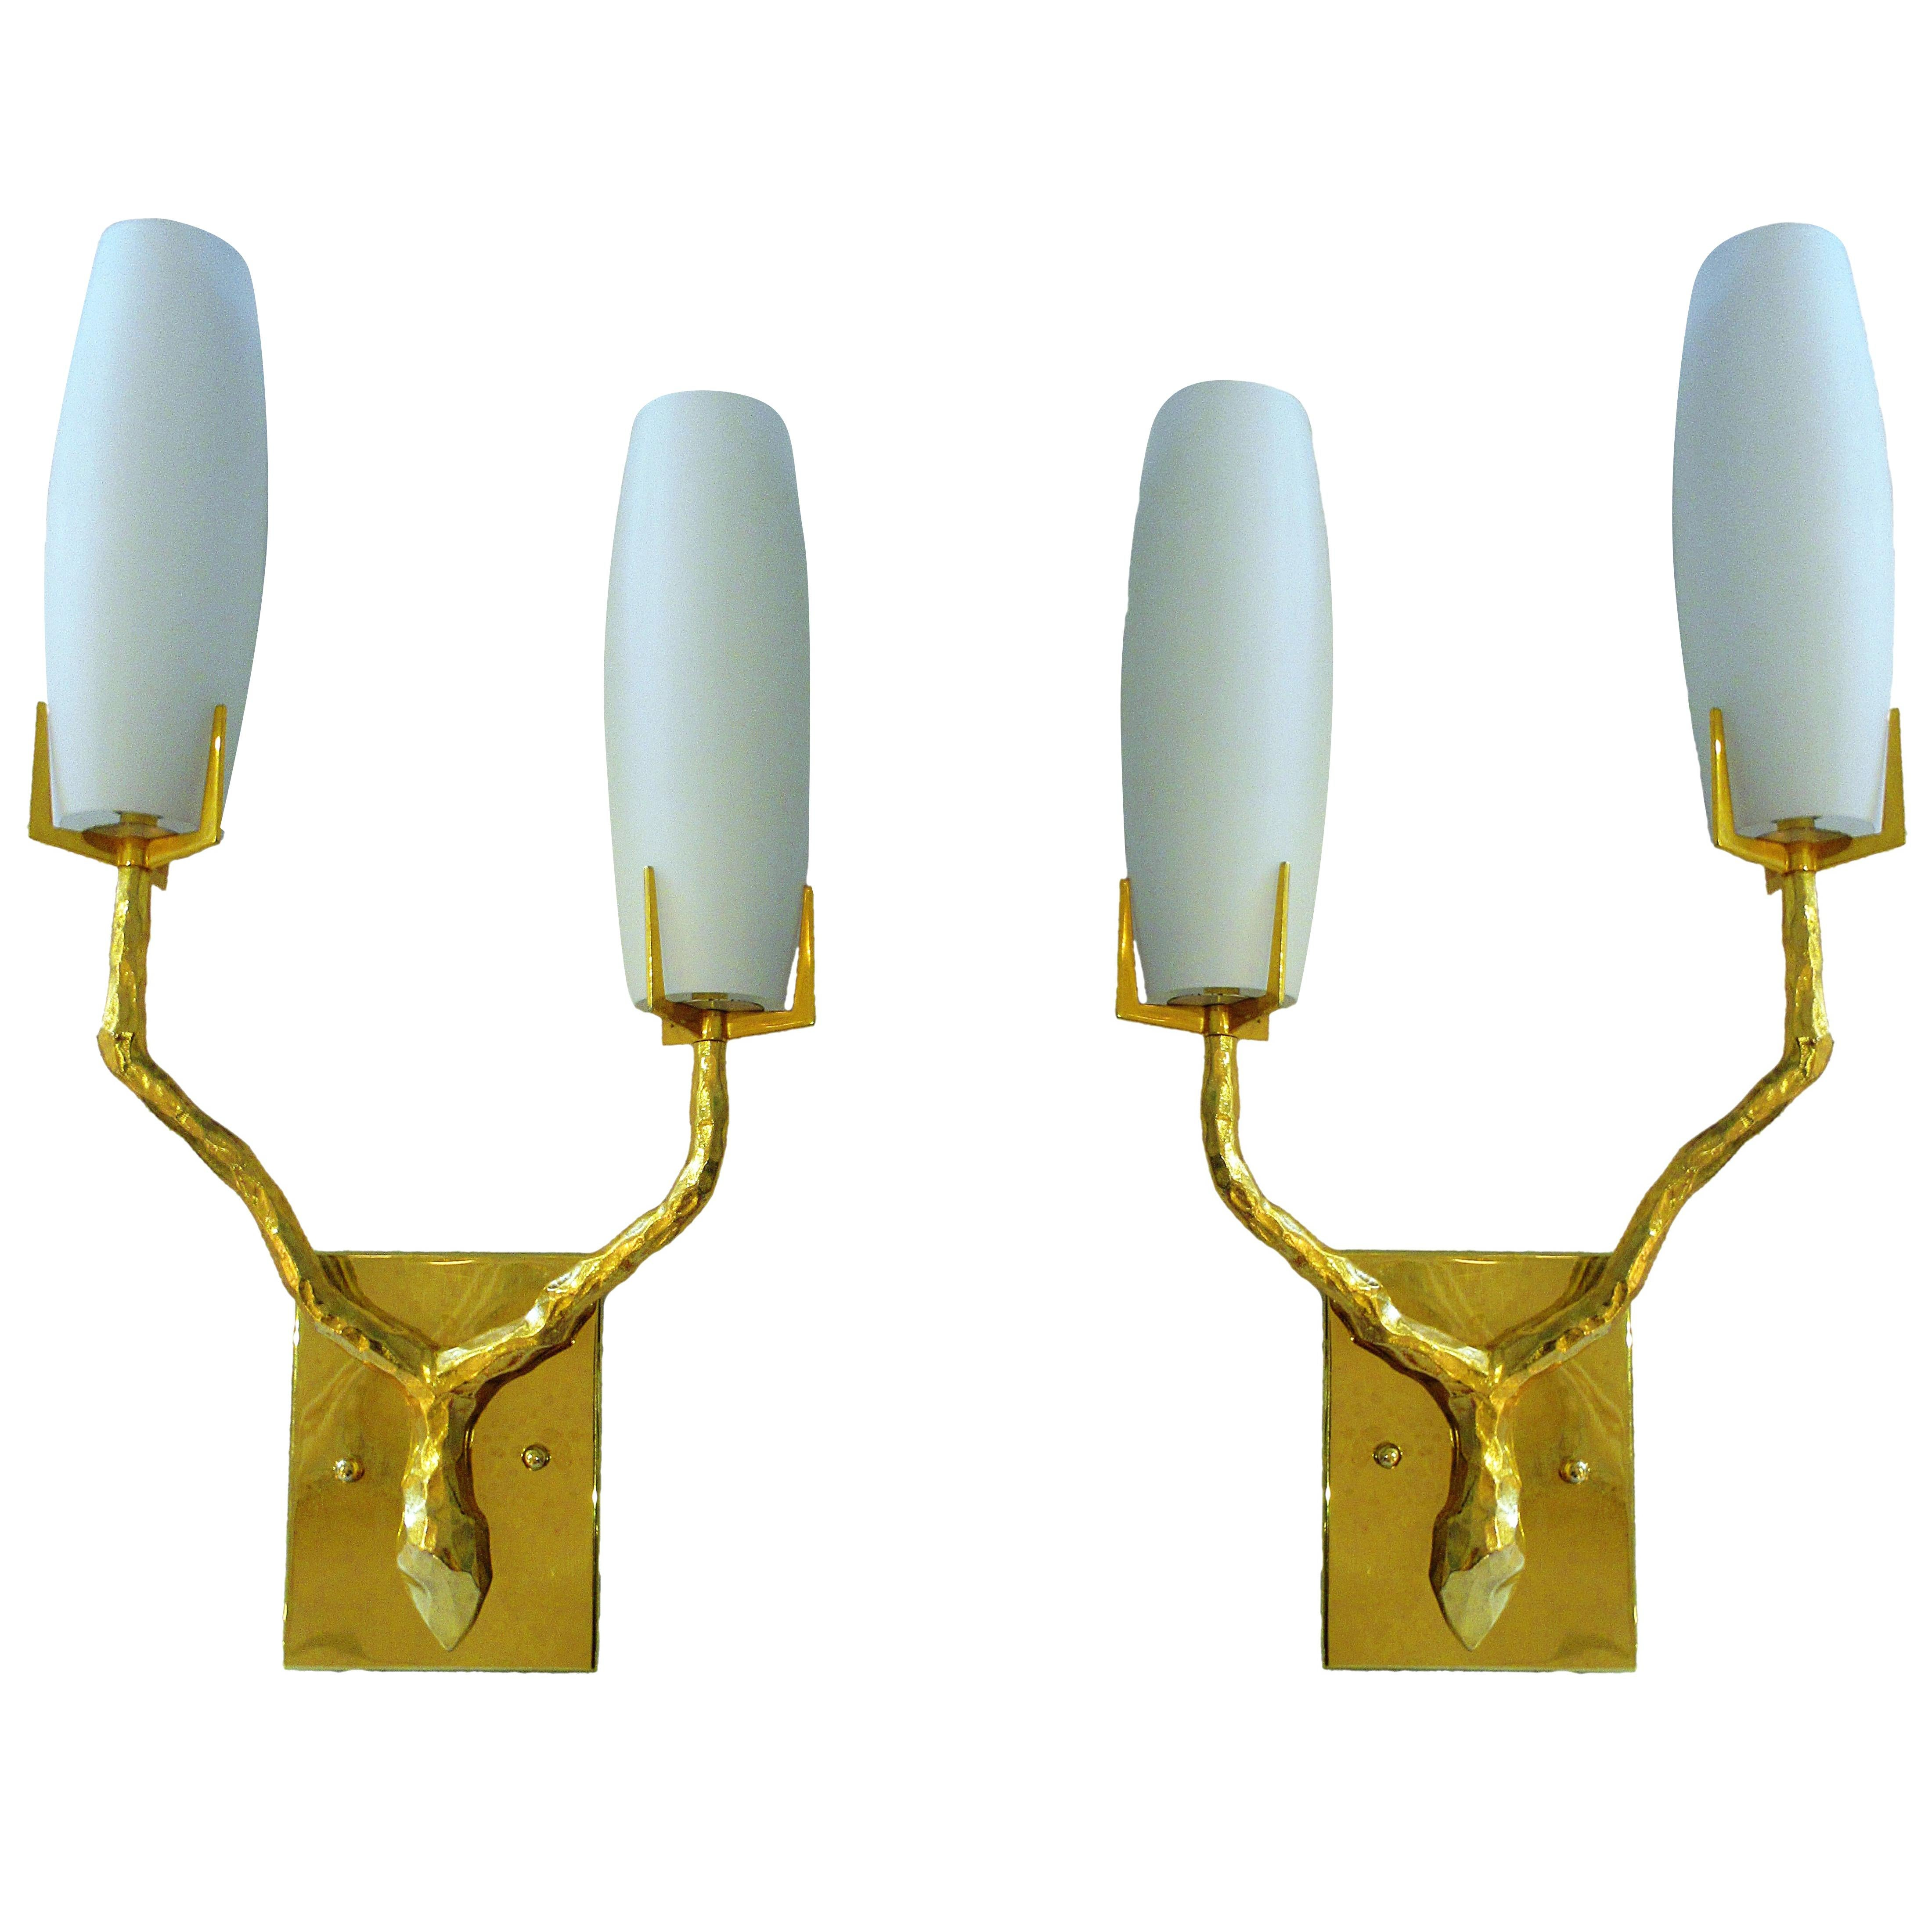 Pair of French Modern Gilt Bronze and Glass Wall Lights, Maison Arlus, 1960's